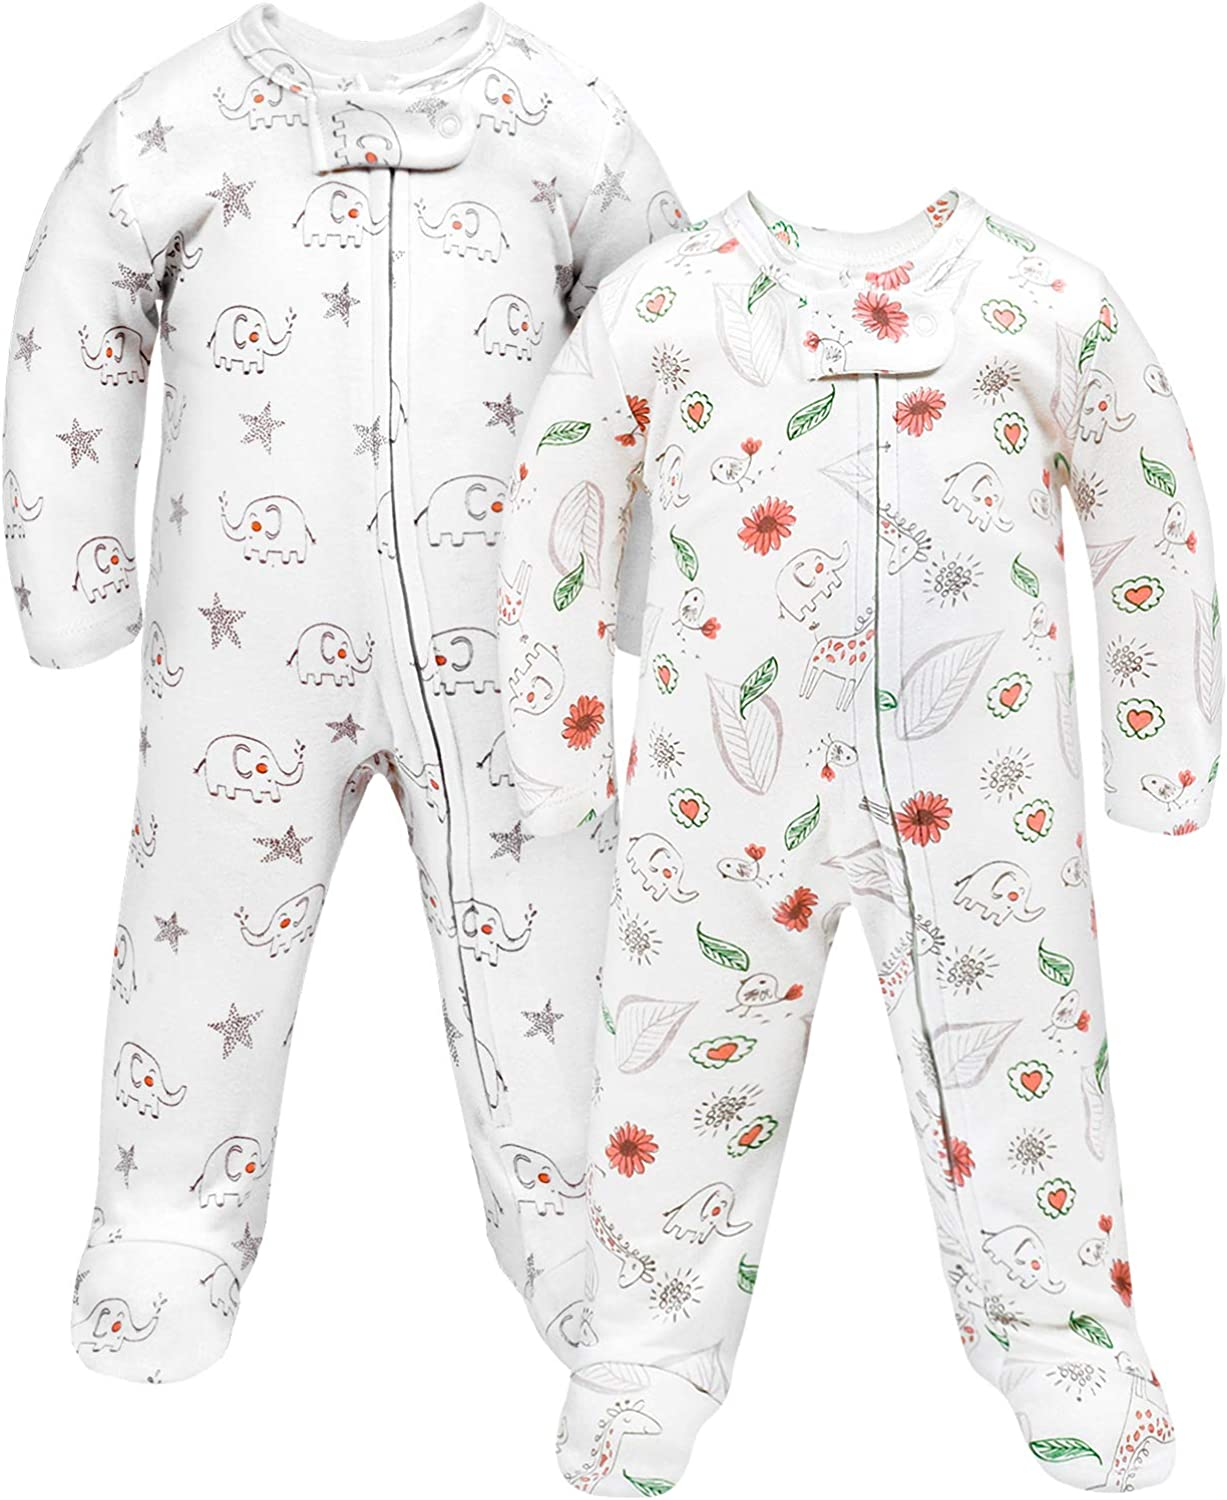 2-Pack Cotton Footed Sleep and Play Pajamas, Snug Fit Footies for Baby Boy Girl